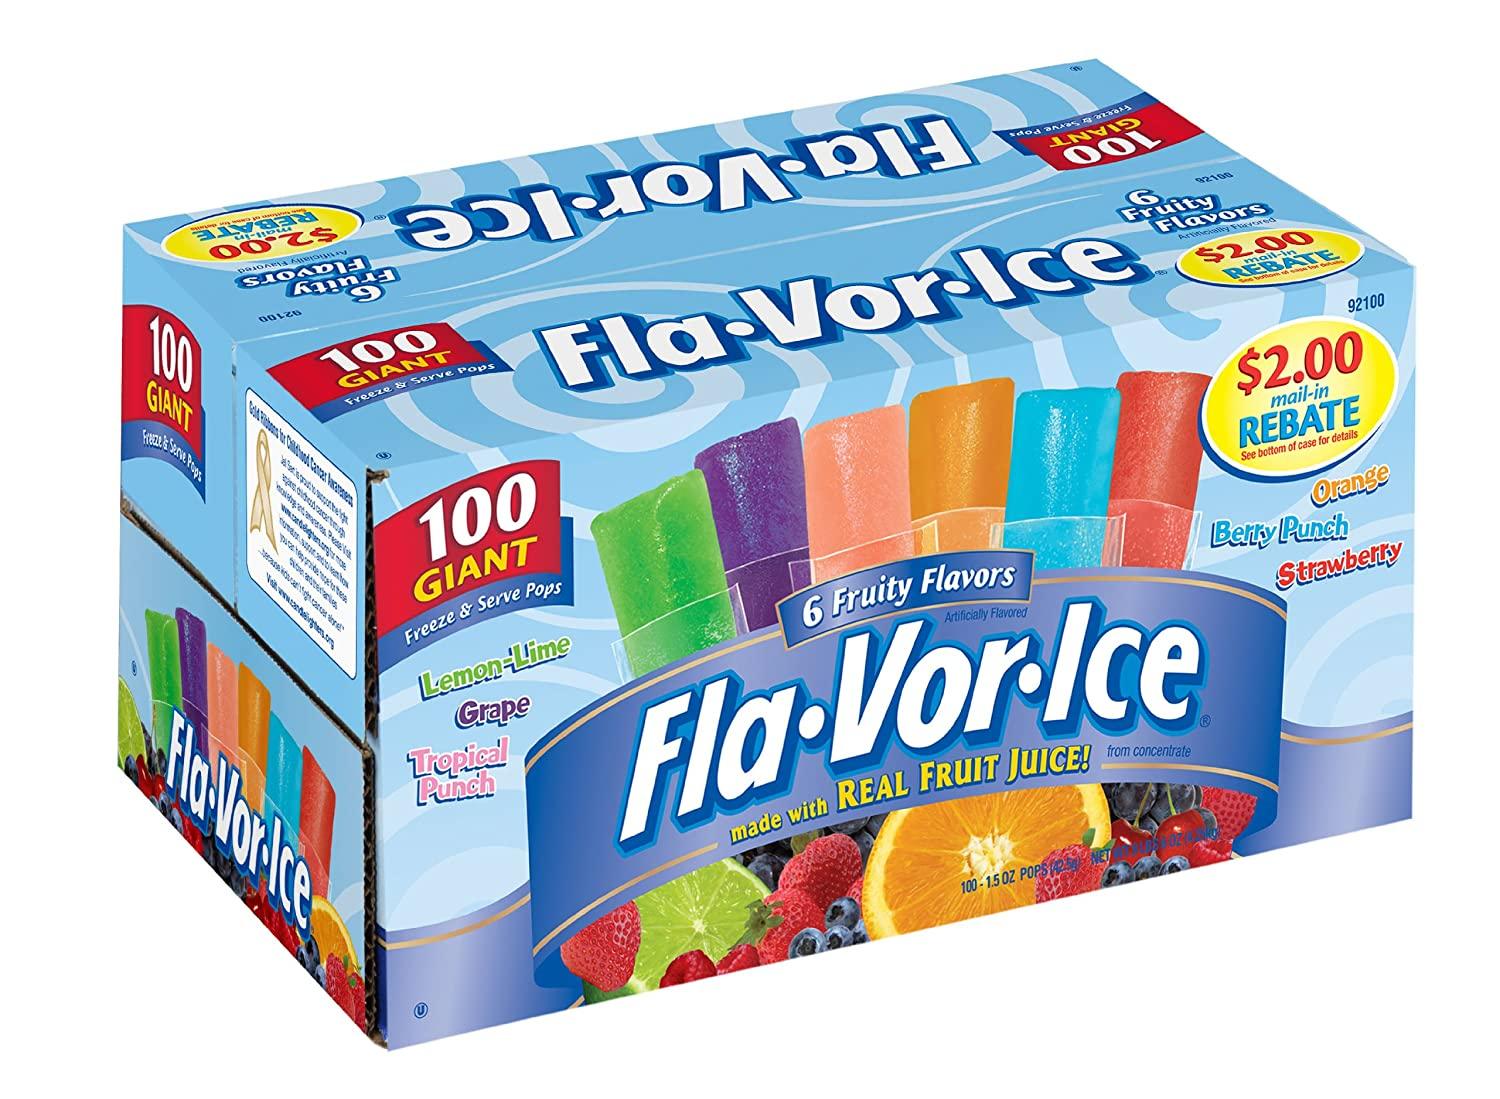 Fla-Vor-IceGiant Popsicles Variety Pack of Jumbo Freezer Bars (1.5oz/100-Count)